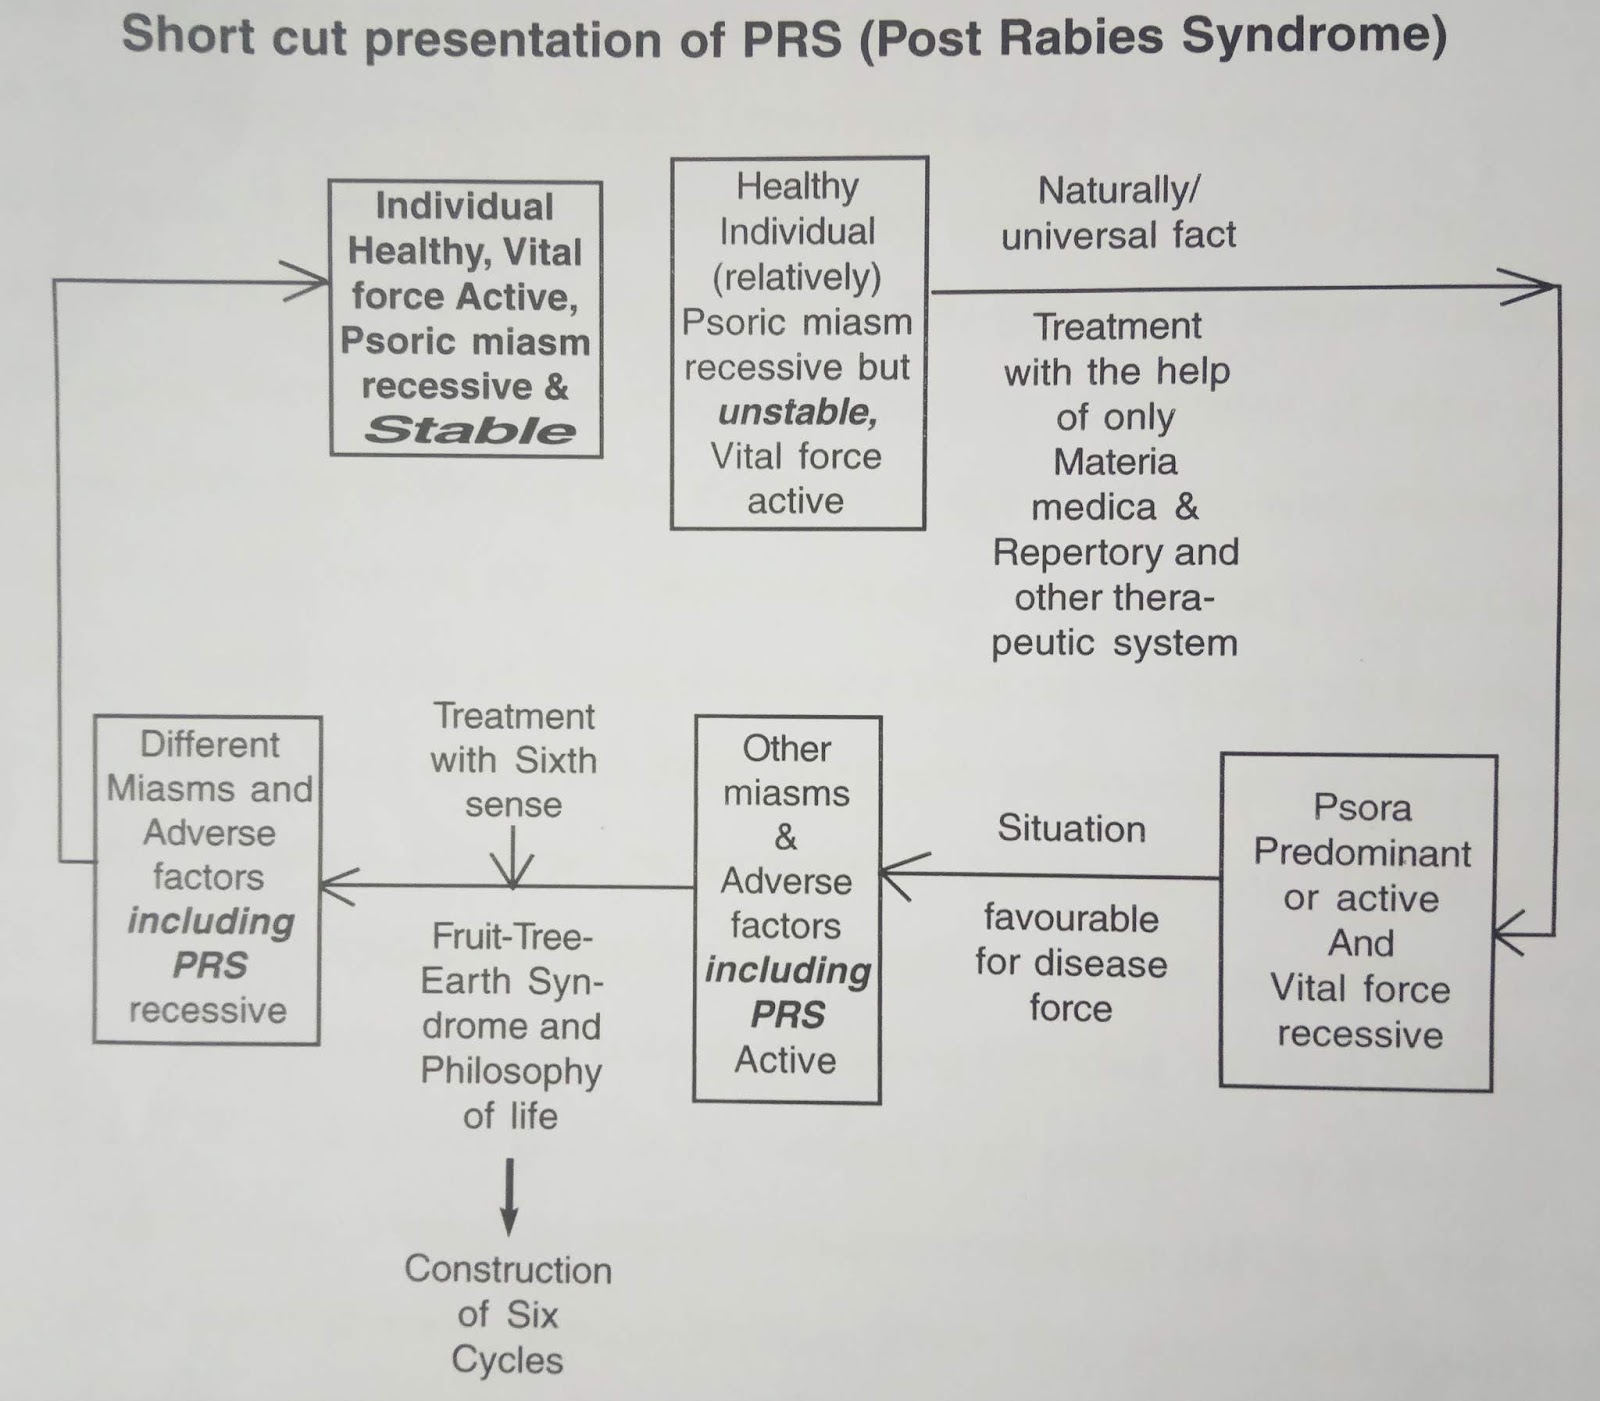 Post Rabies Syndrome (PRS)